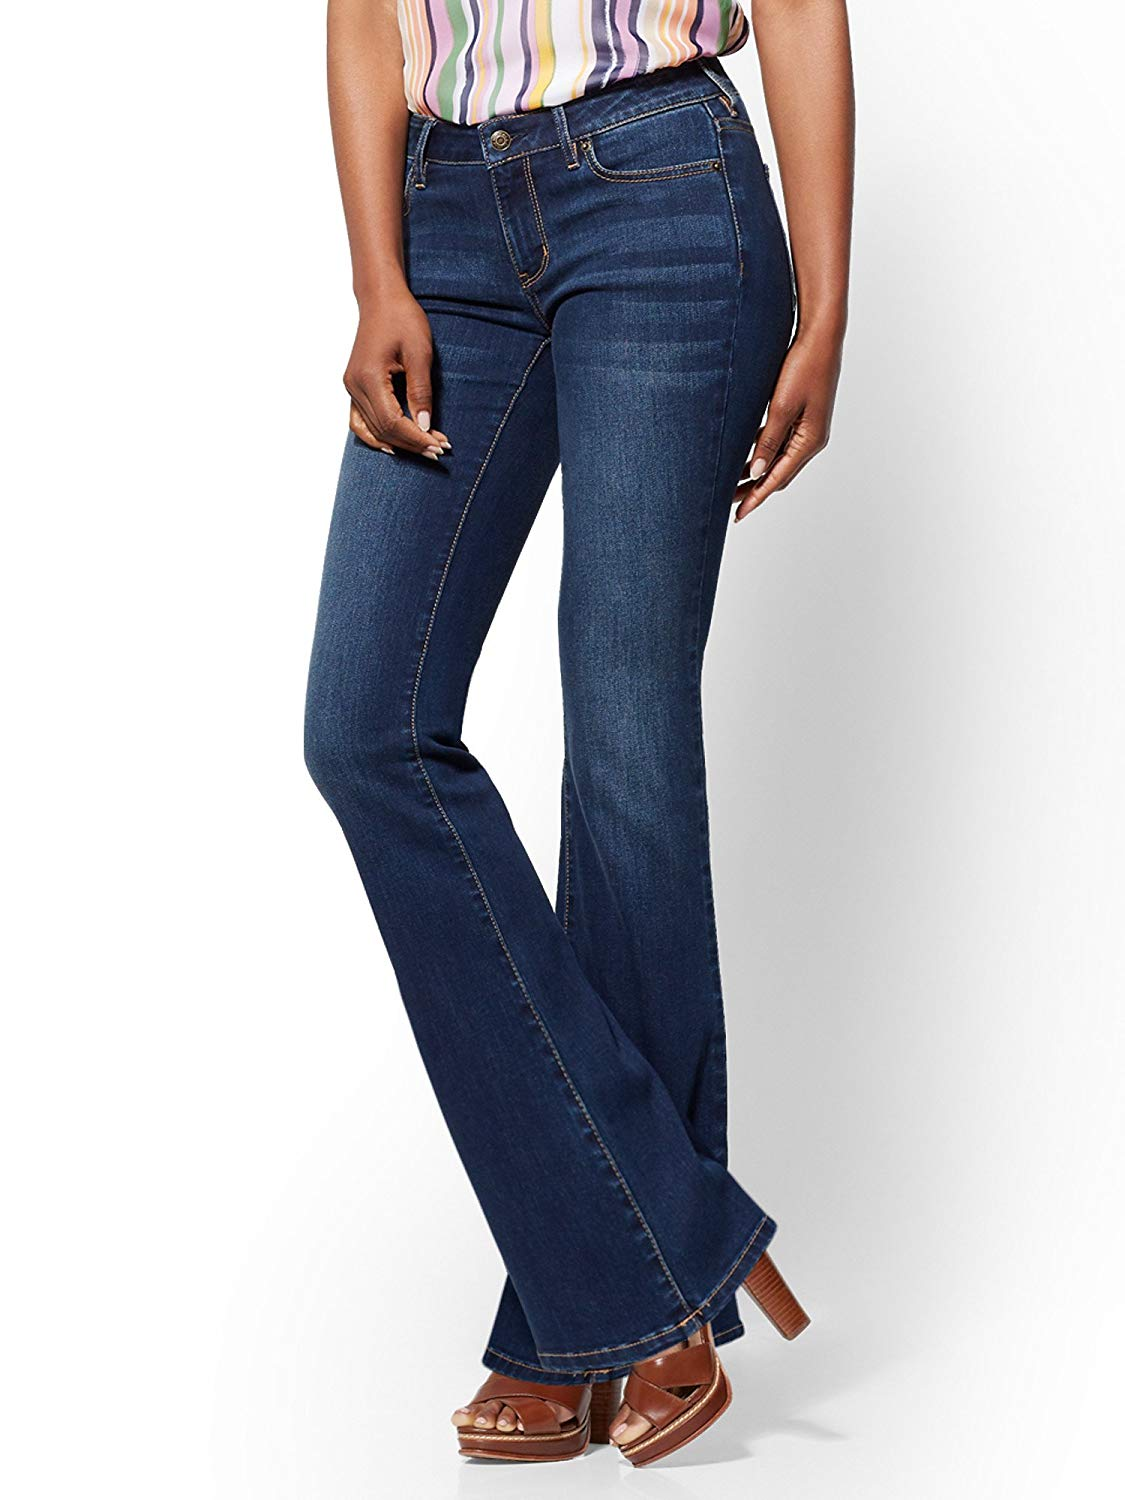 946cc46693f Get Quotations · New York & Co. Women's Soho Jeans - Tall Curvy Bootcut -  Flawless Blue Wash